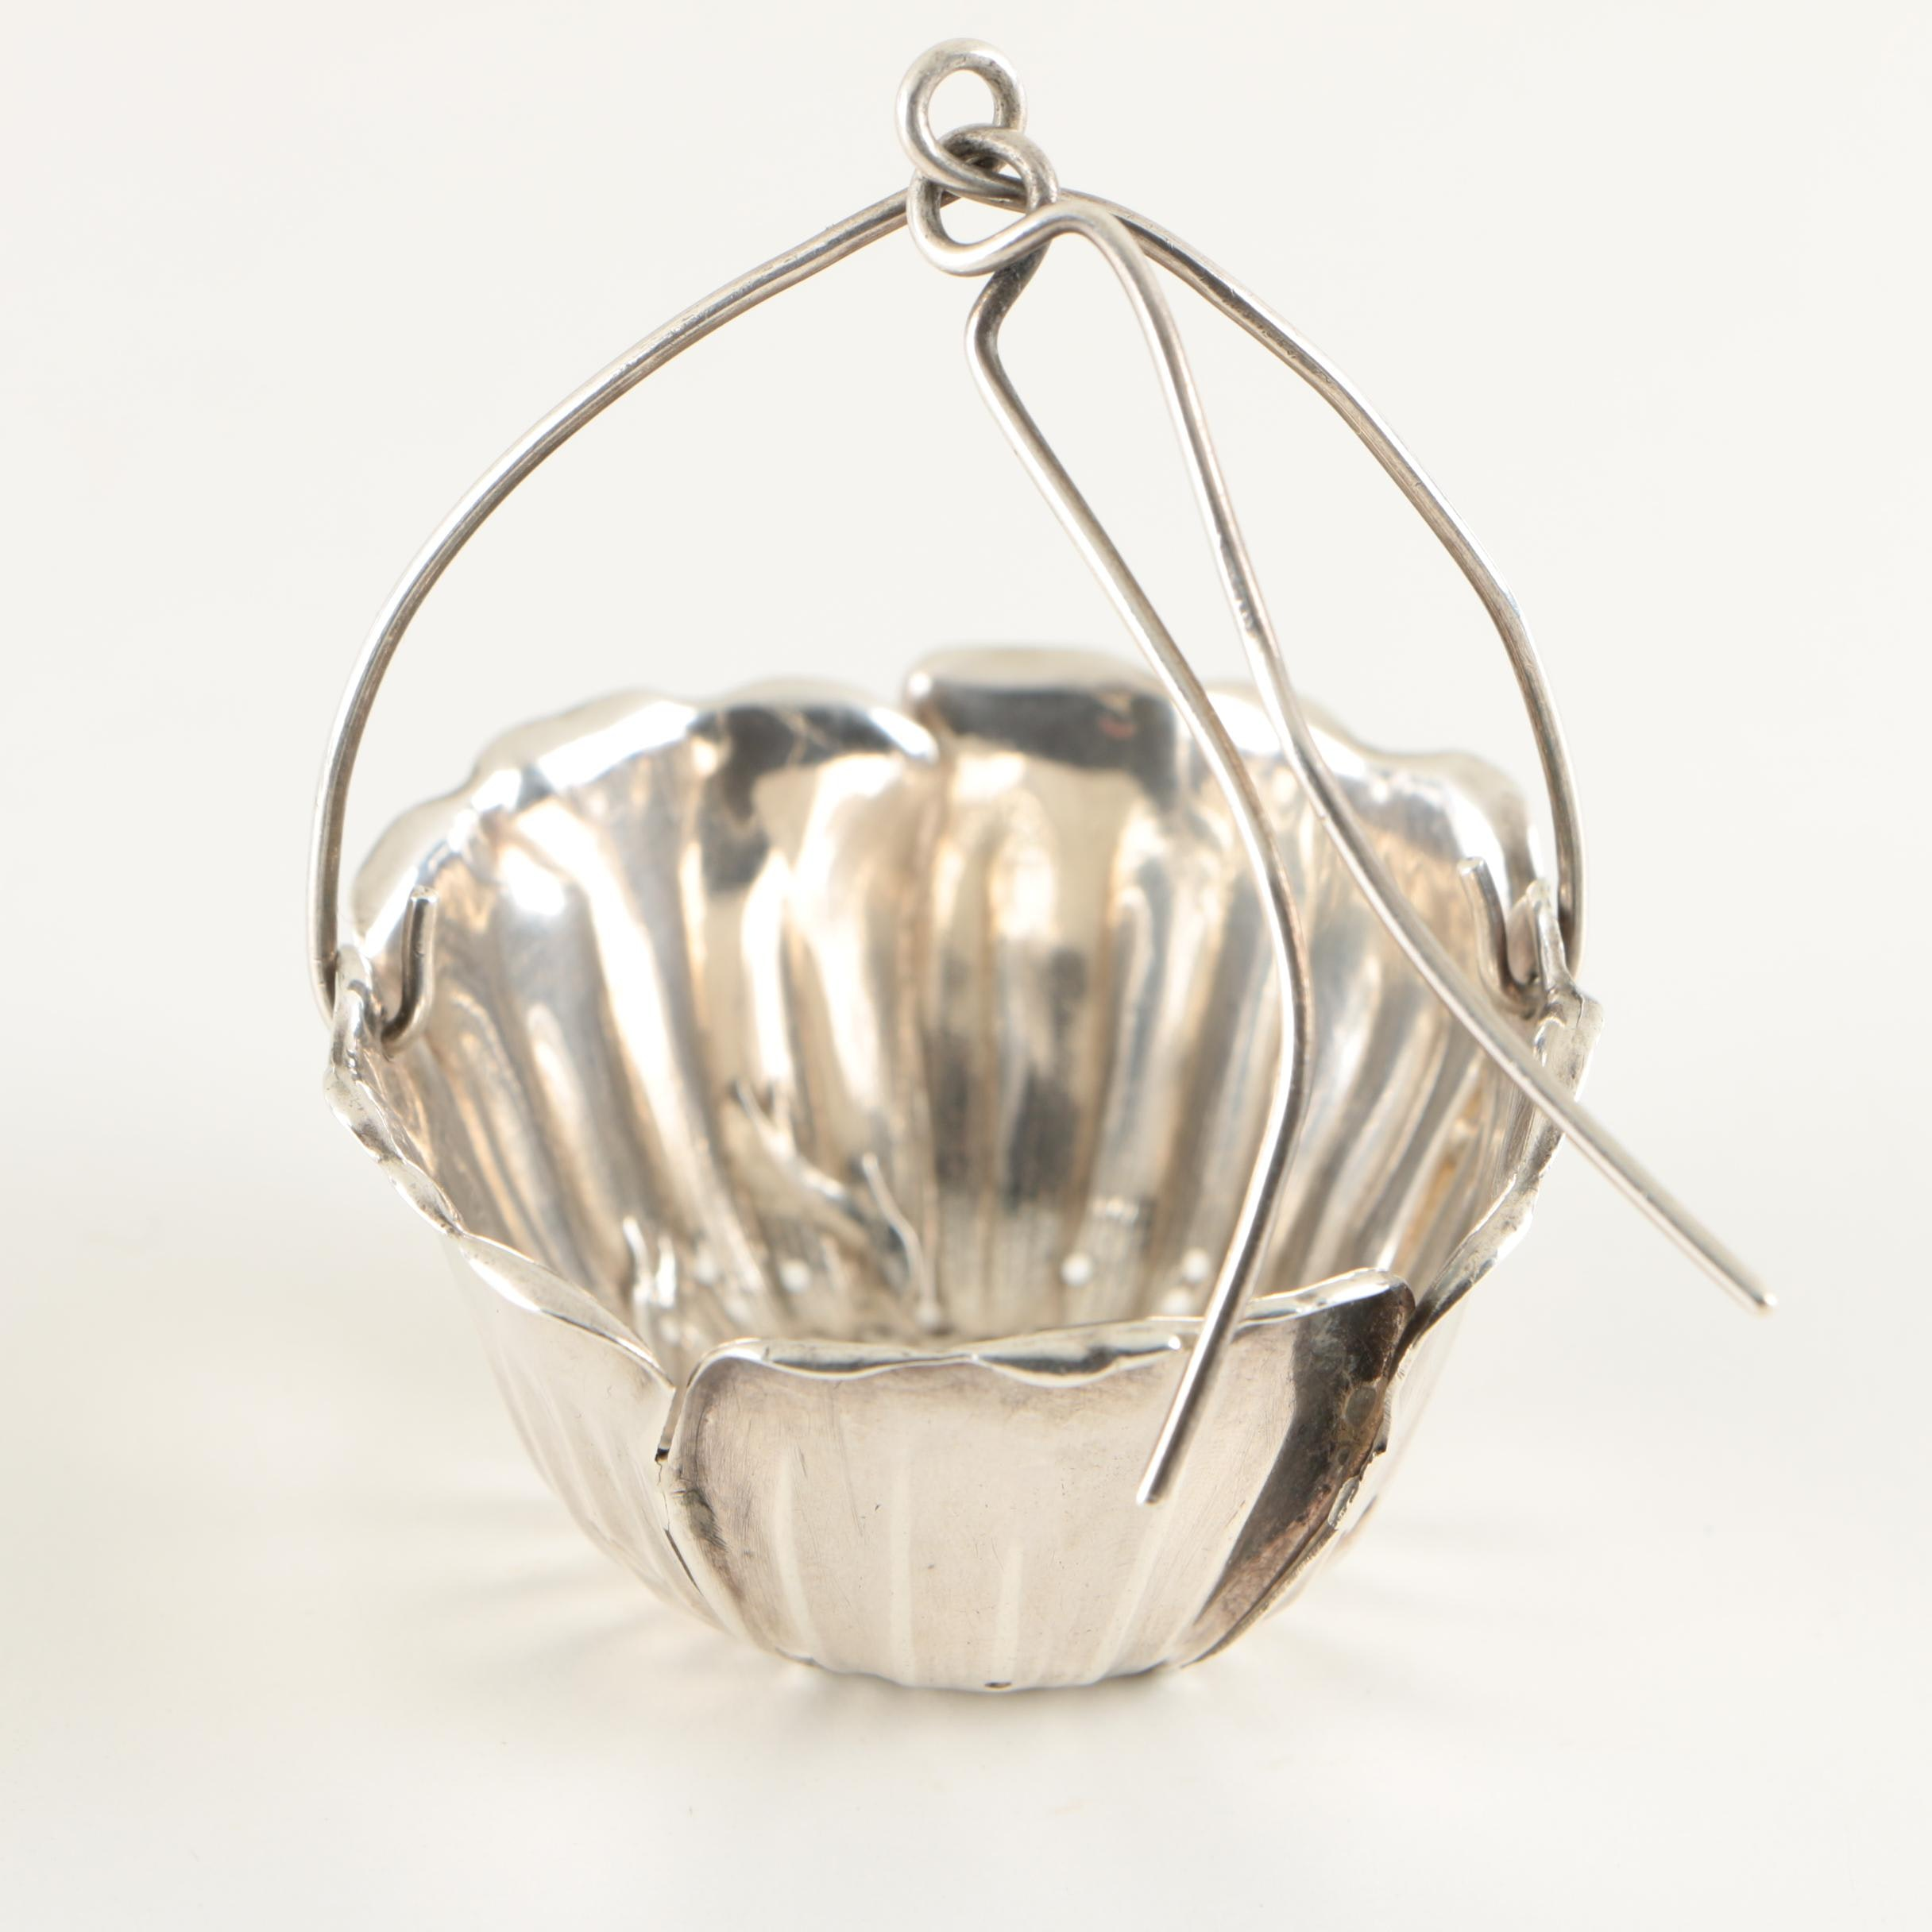 Gorham Sterling Poppy Blossom Form Tea Strainer